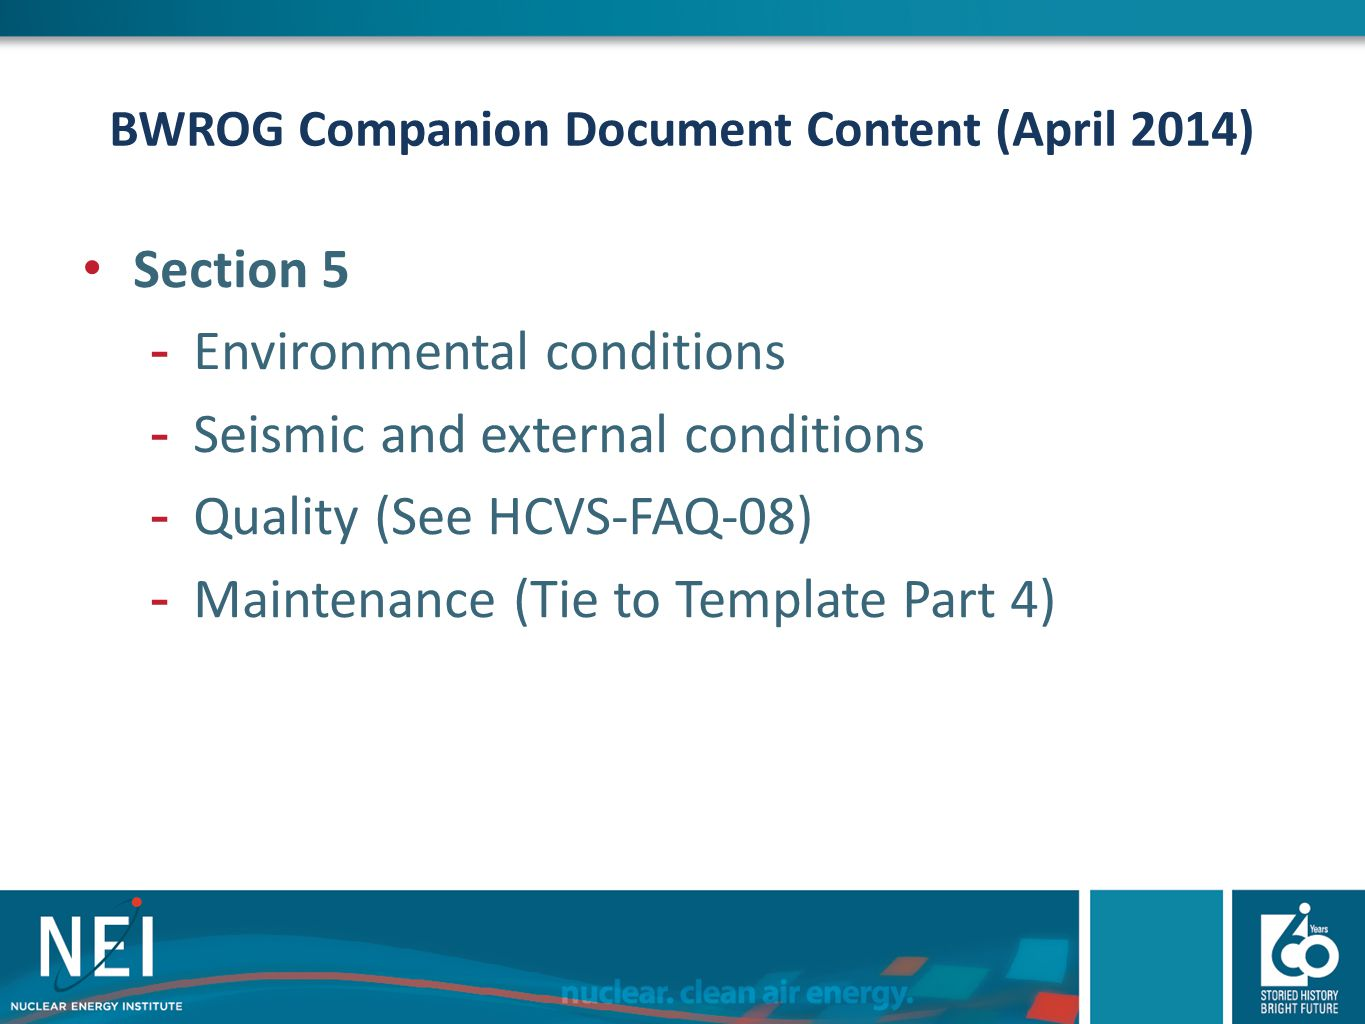 BWROG Companion Document Content (April 2014) Section 5 -Environmental conditions -Seismic and external conditions -Quality (See HCVS-FAQ-08) -Mainten